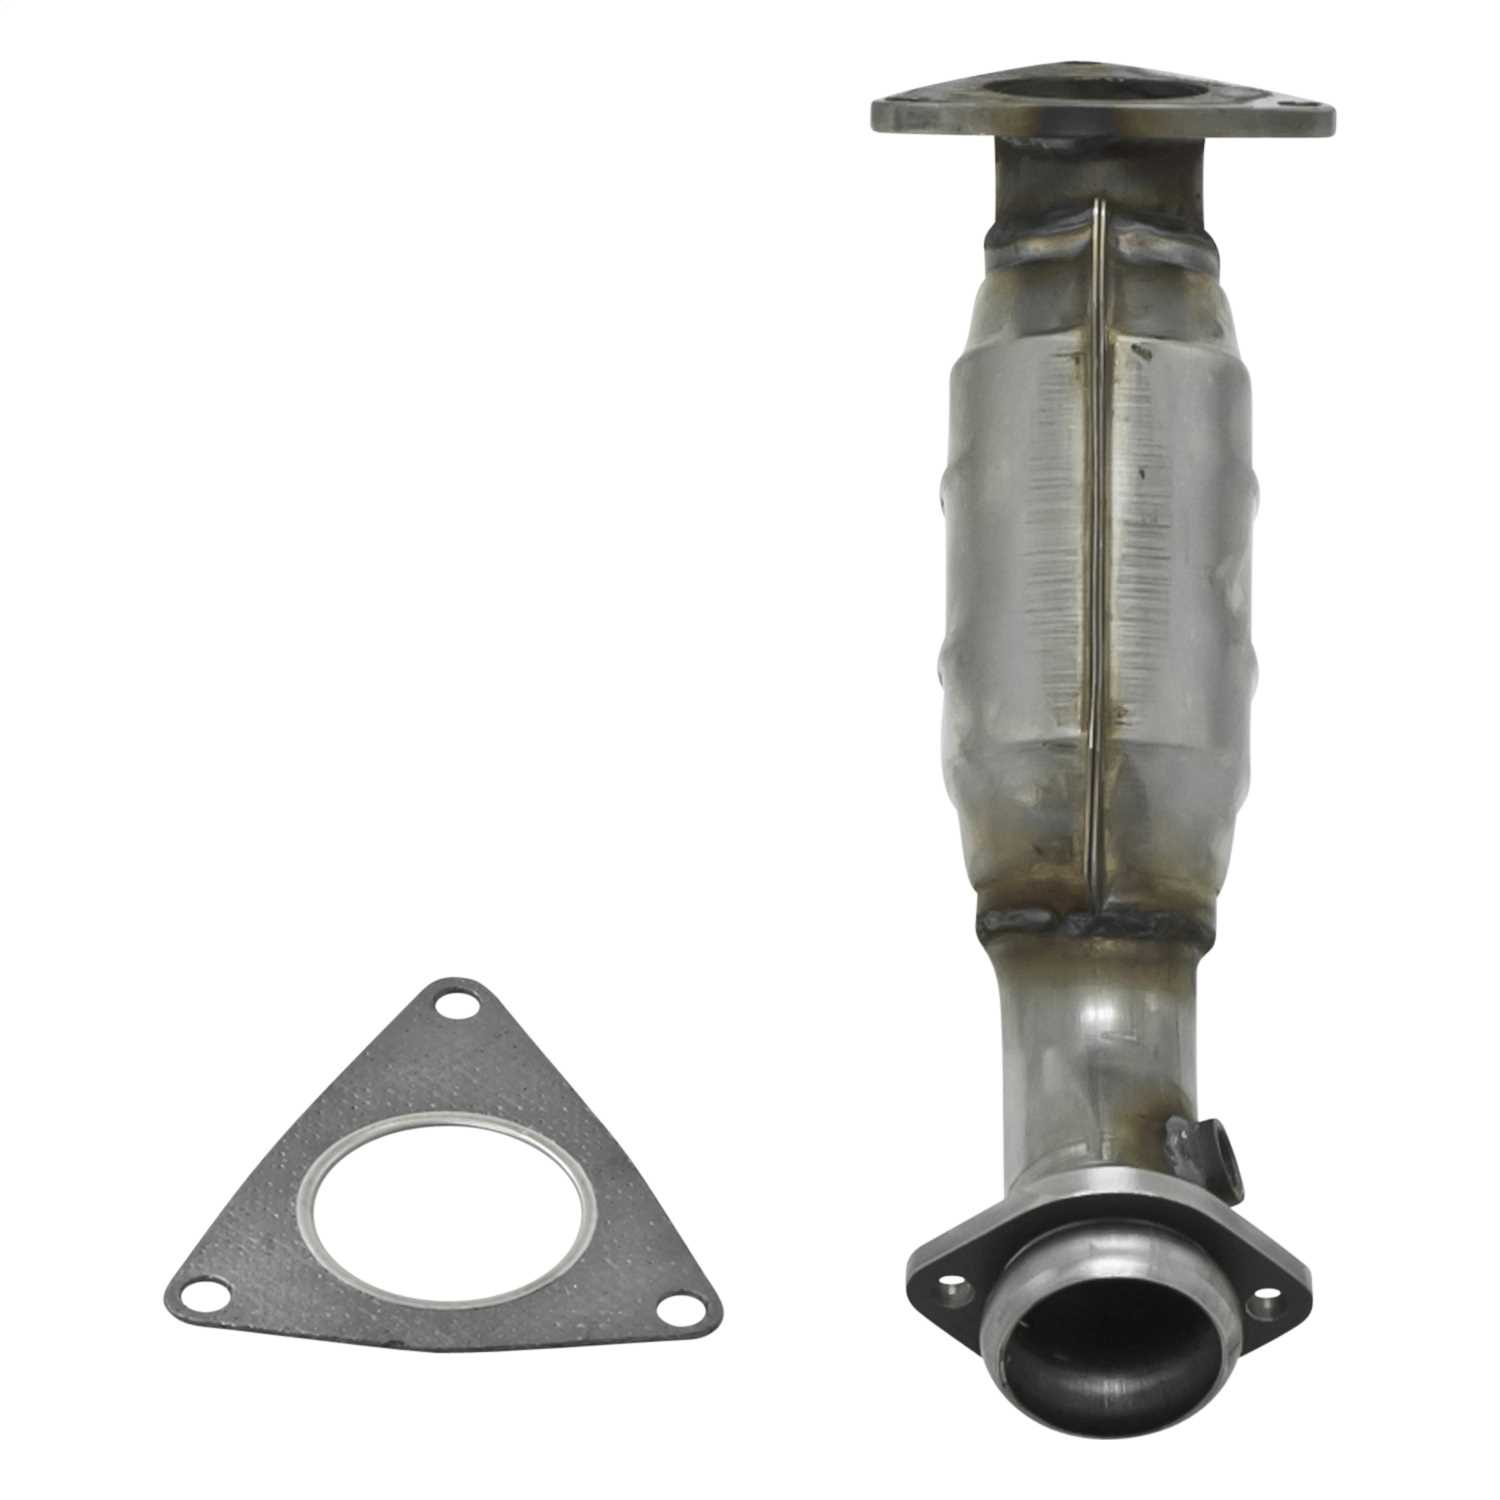 2010008 Flowmaster 49 State Catalytic Converters Direct Fit Catalytic Converter